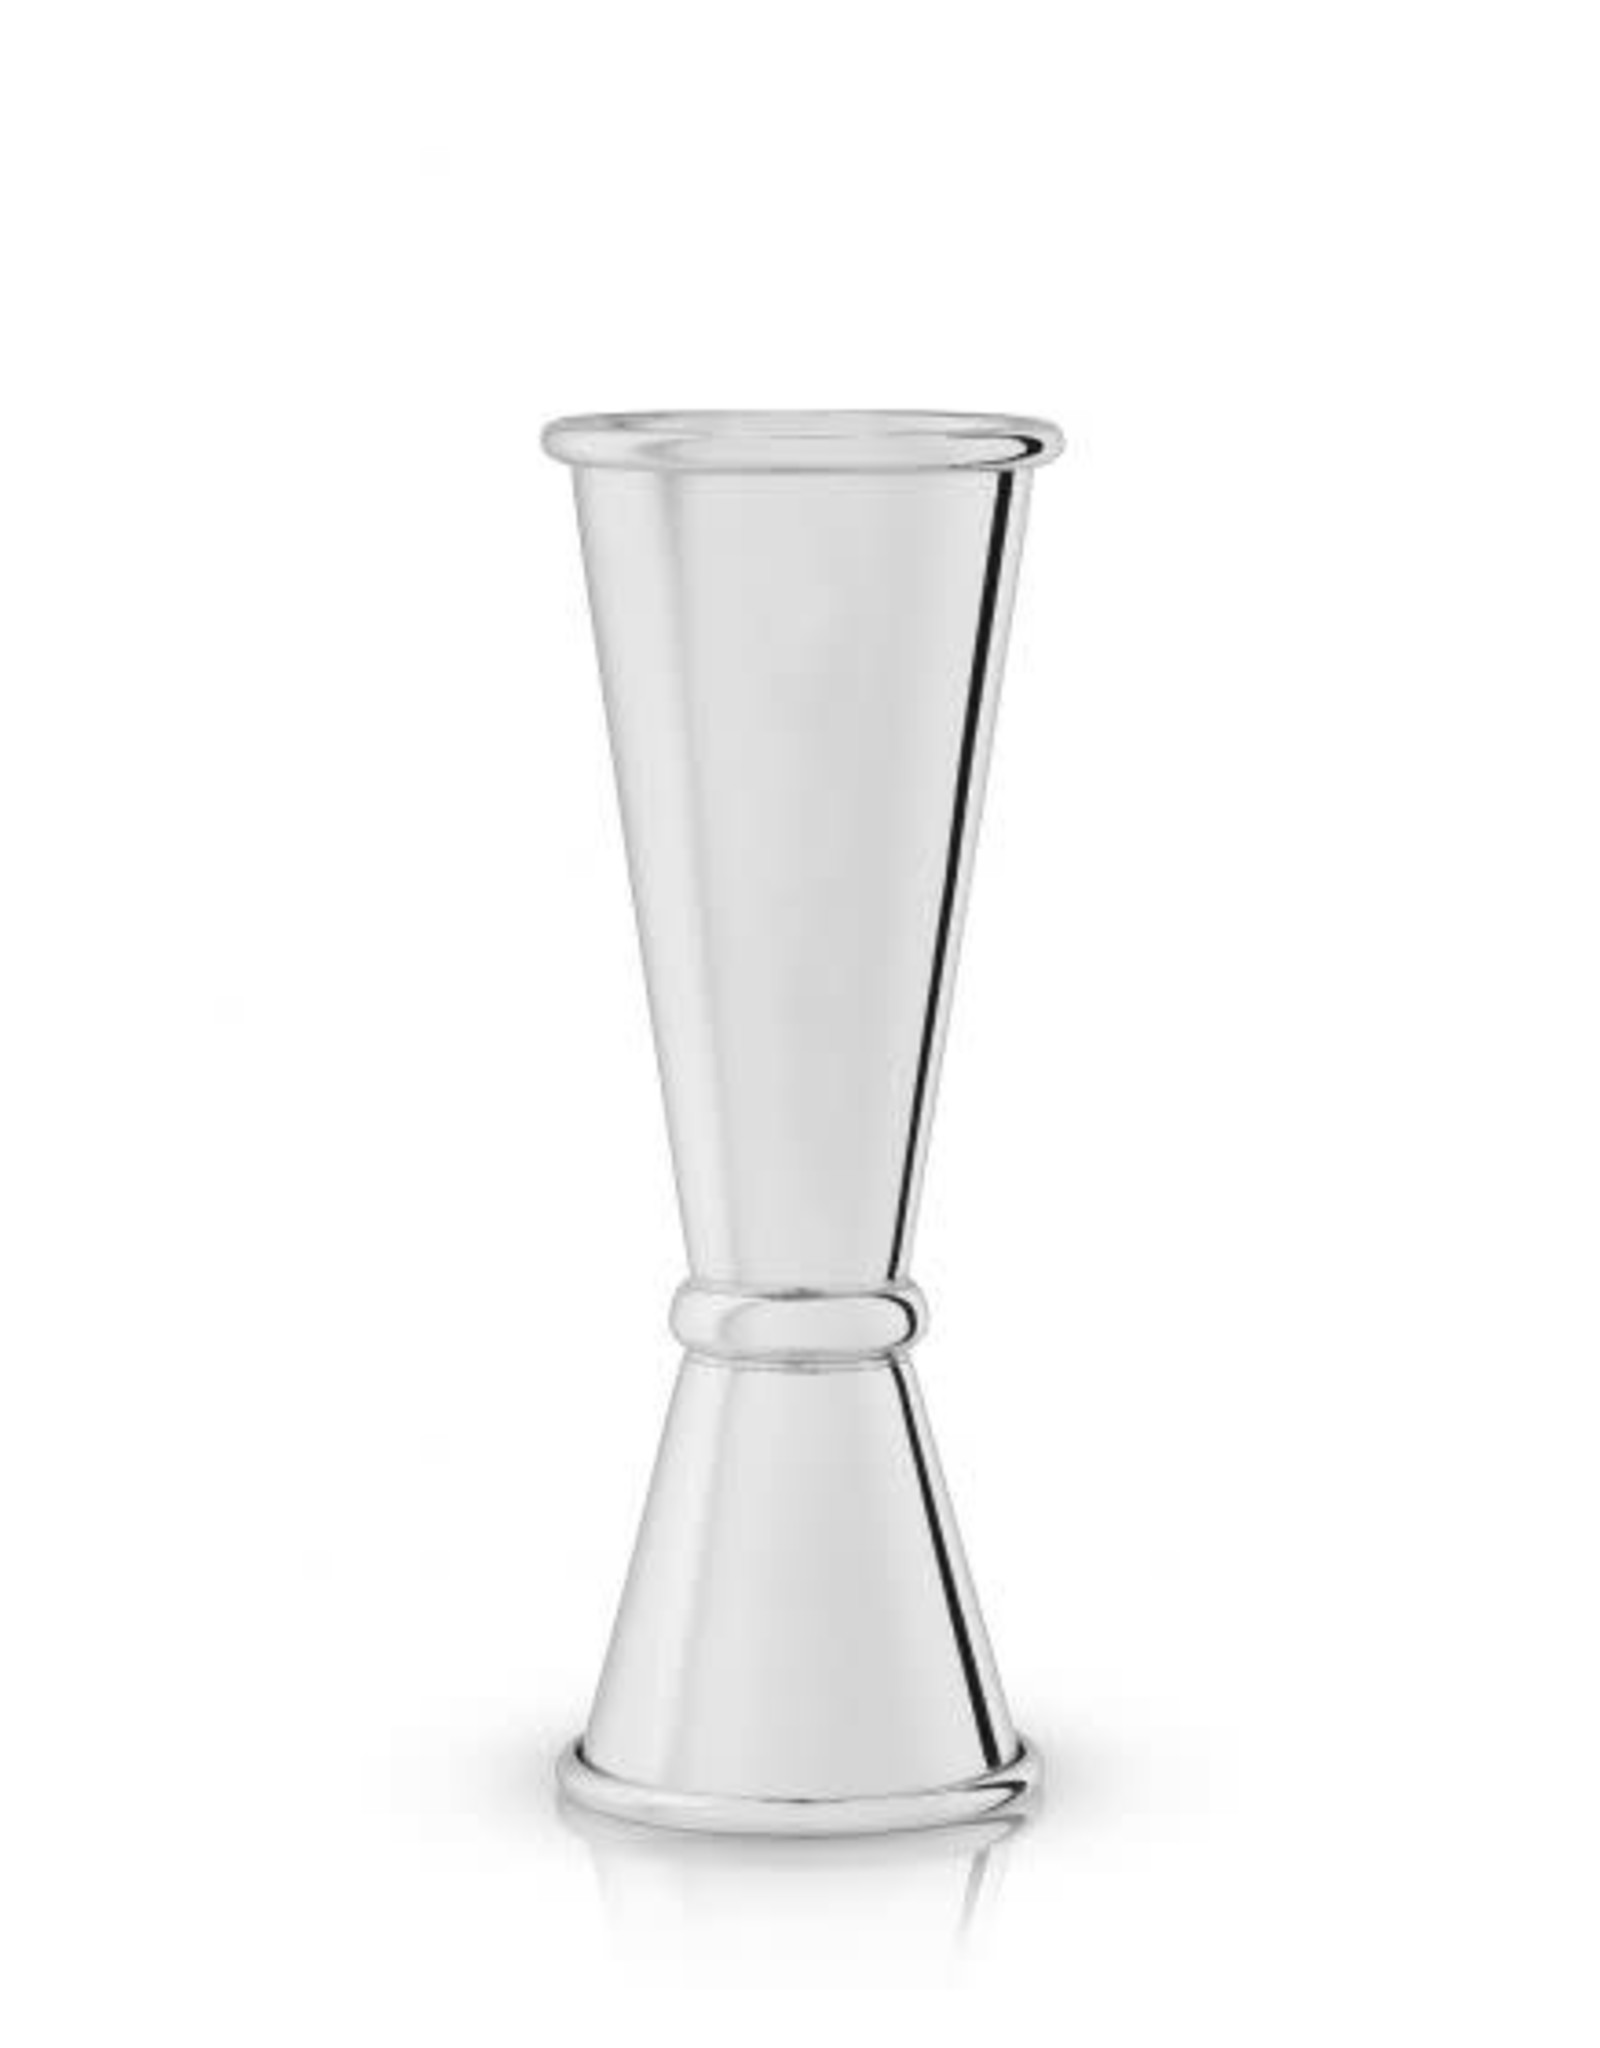 Large Jigger - Stainless Steel